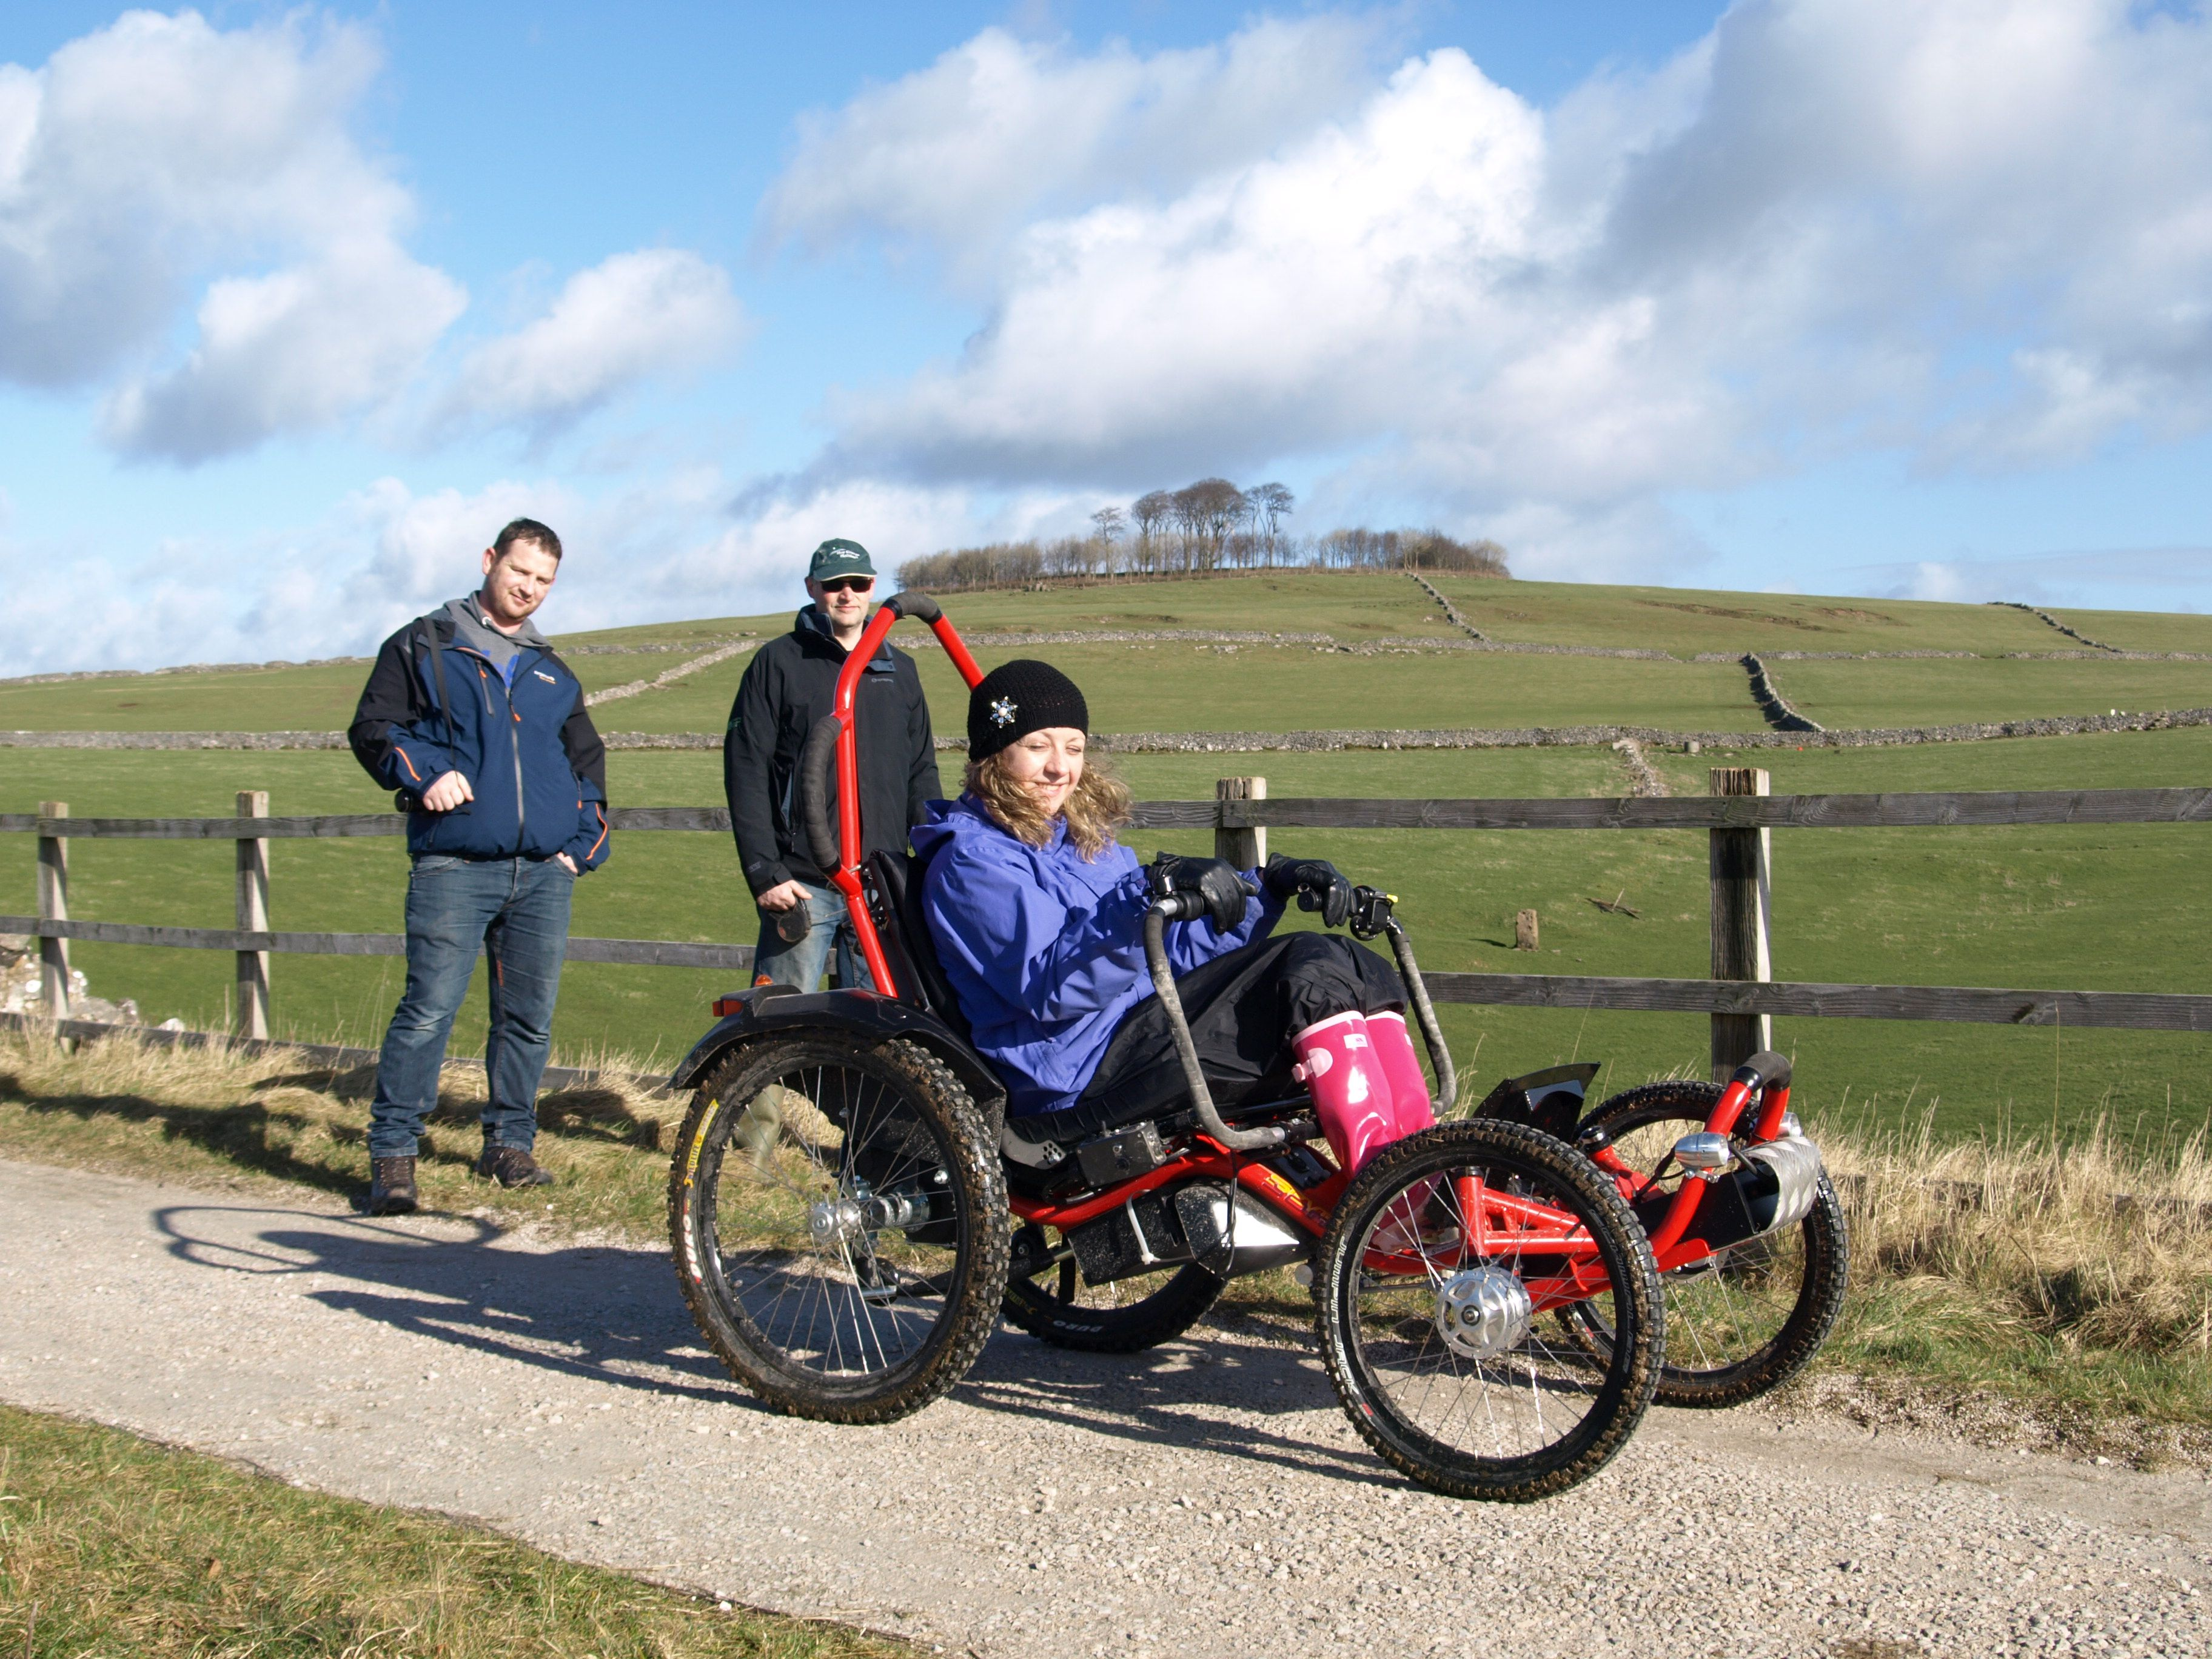 Our guests trying out the Boma 7 offroad wheelchair at